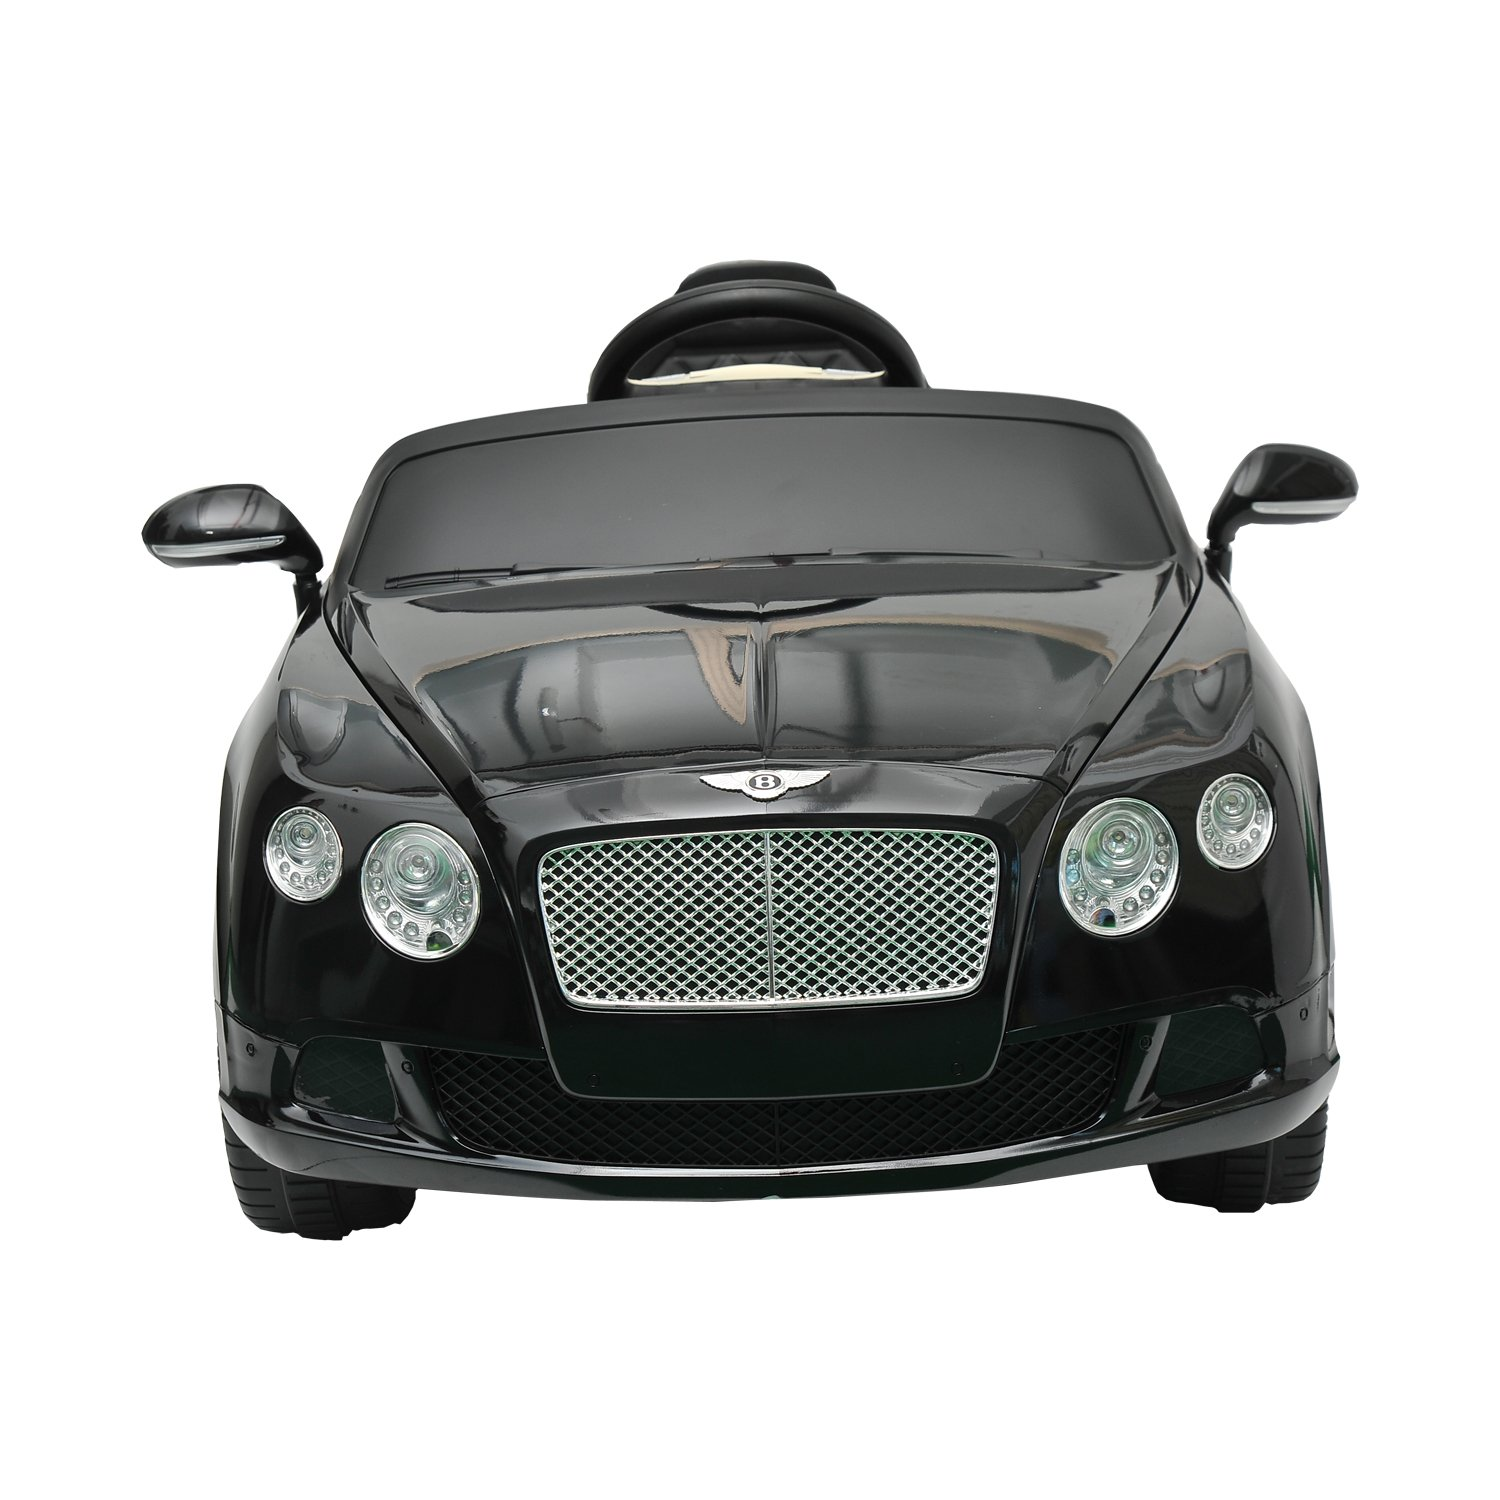 Aosom Bentley Gtc Kids 6v Electric Ride On Toy Car W Continental Audio Wiring Parent Remote Control Black Toys Games